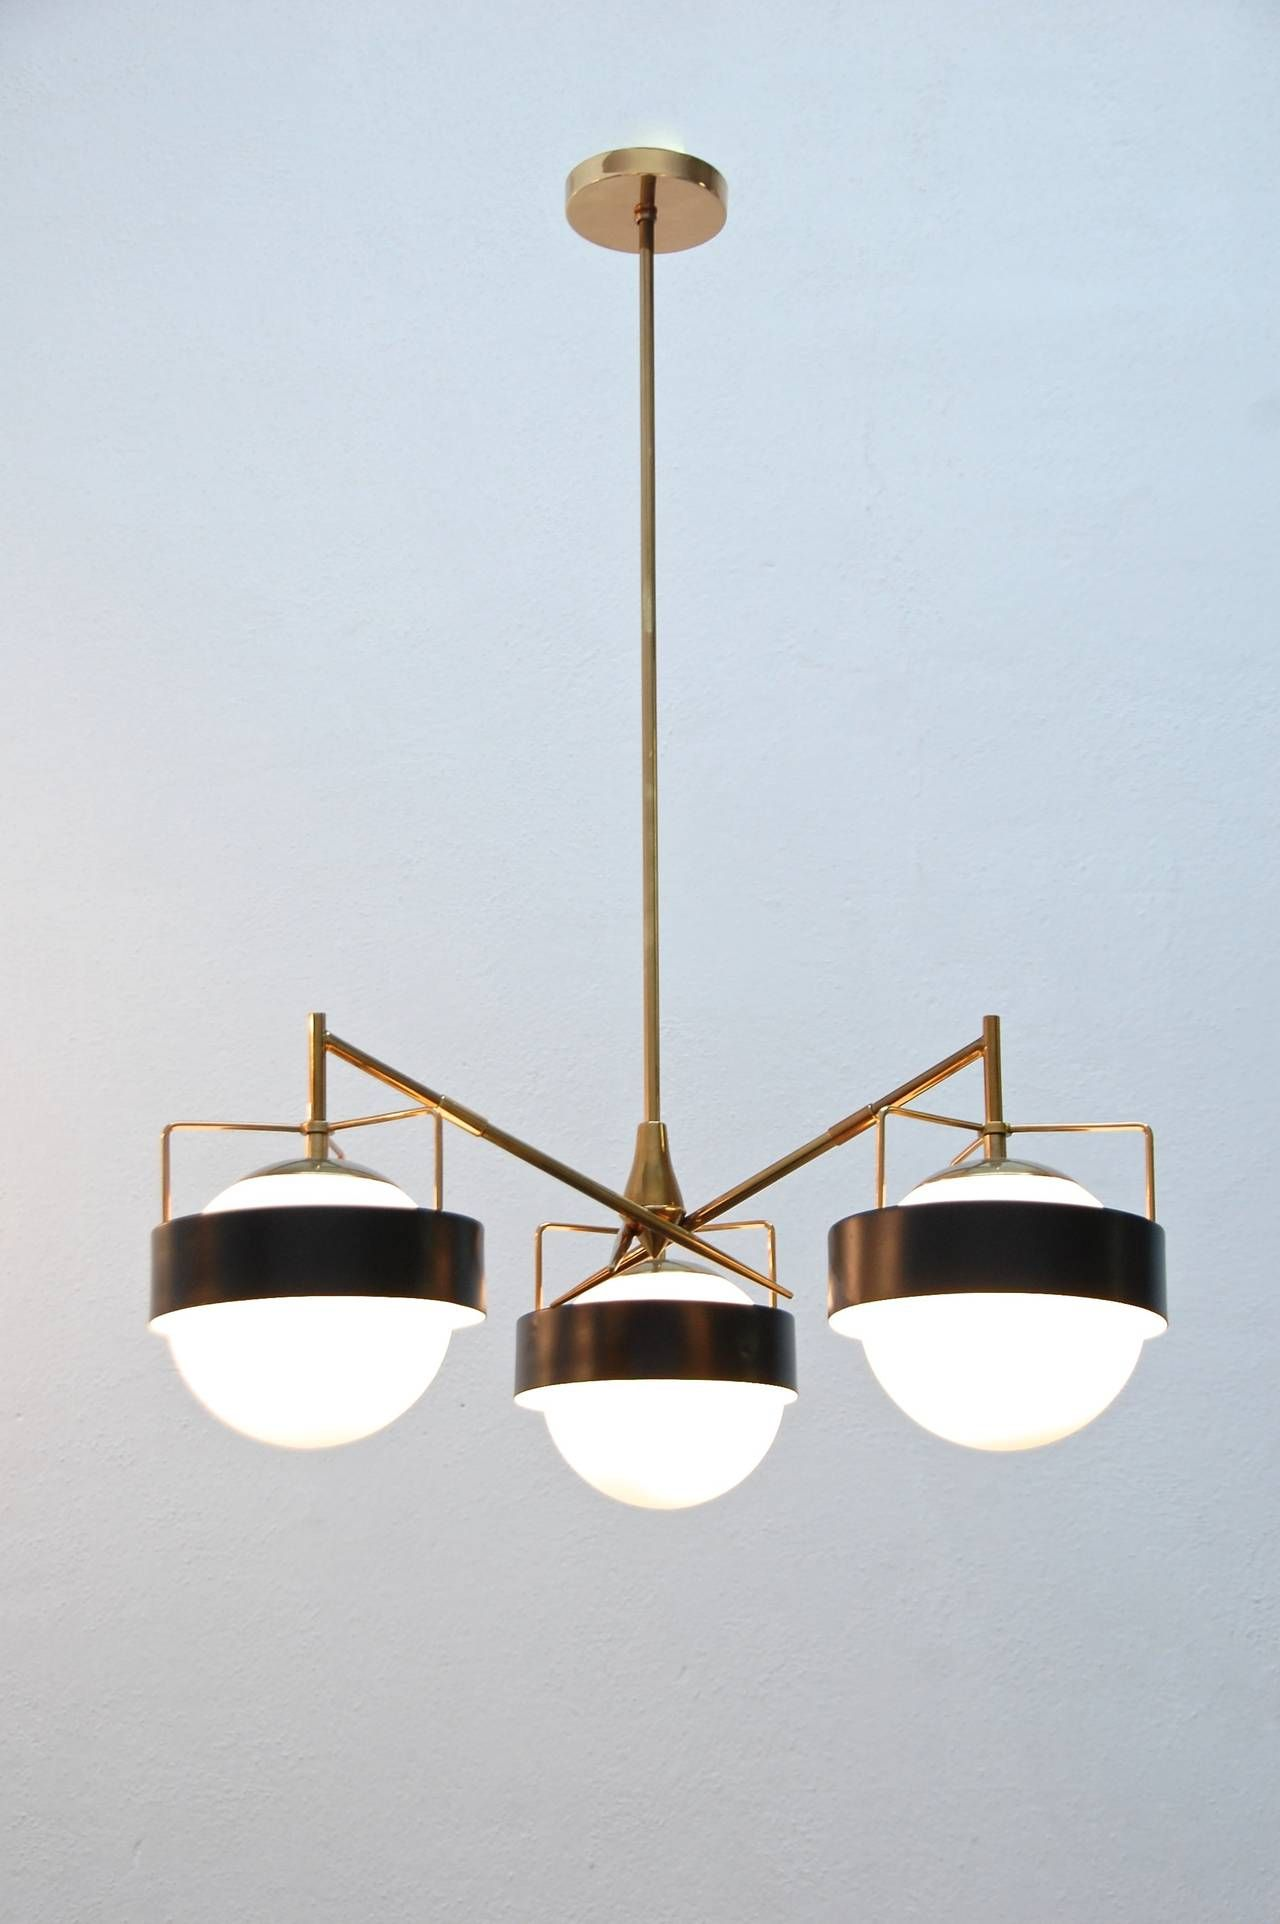 1950s Italian Saturn Chandelier 1stdibs Com Modern Lighting Design Interior Lighting Lighting Inspiration